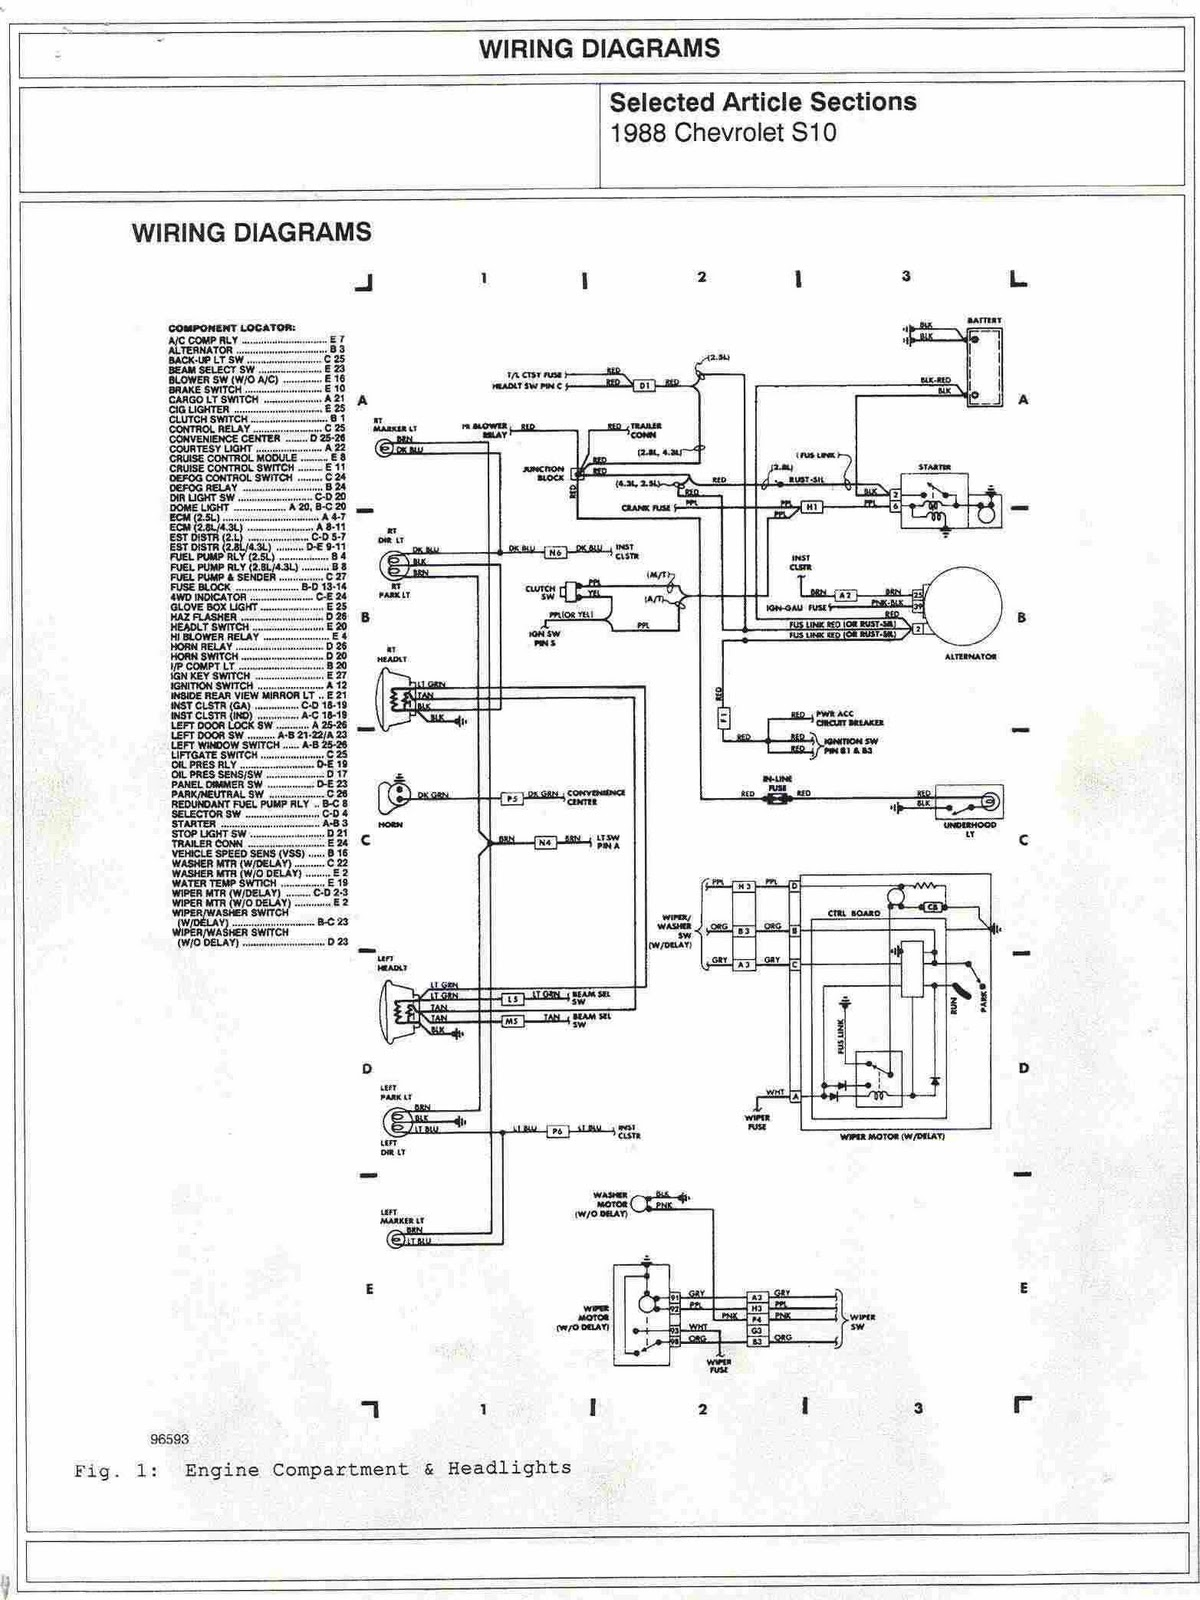 december 2011 all about wiring diagrams rh diagramonwiring blogspot com 1994 S10 Wiring Diagram S10 Wiring Harness Diagram